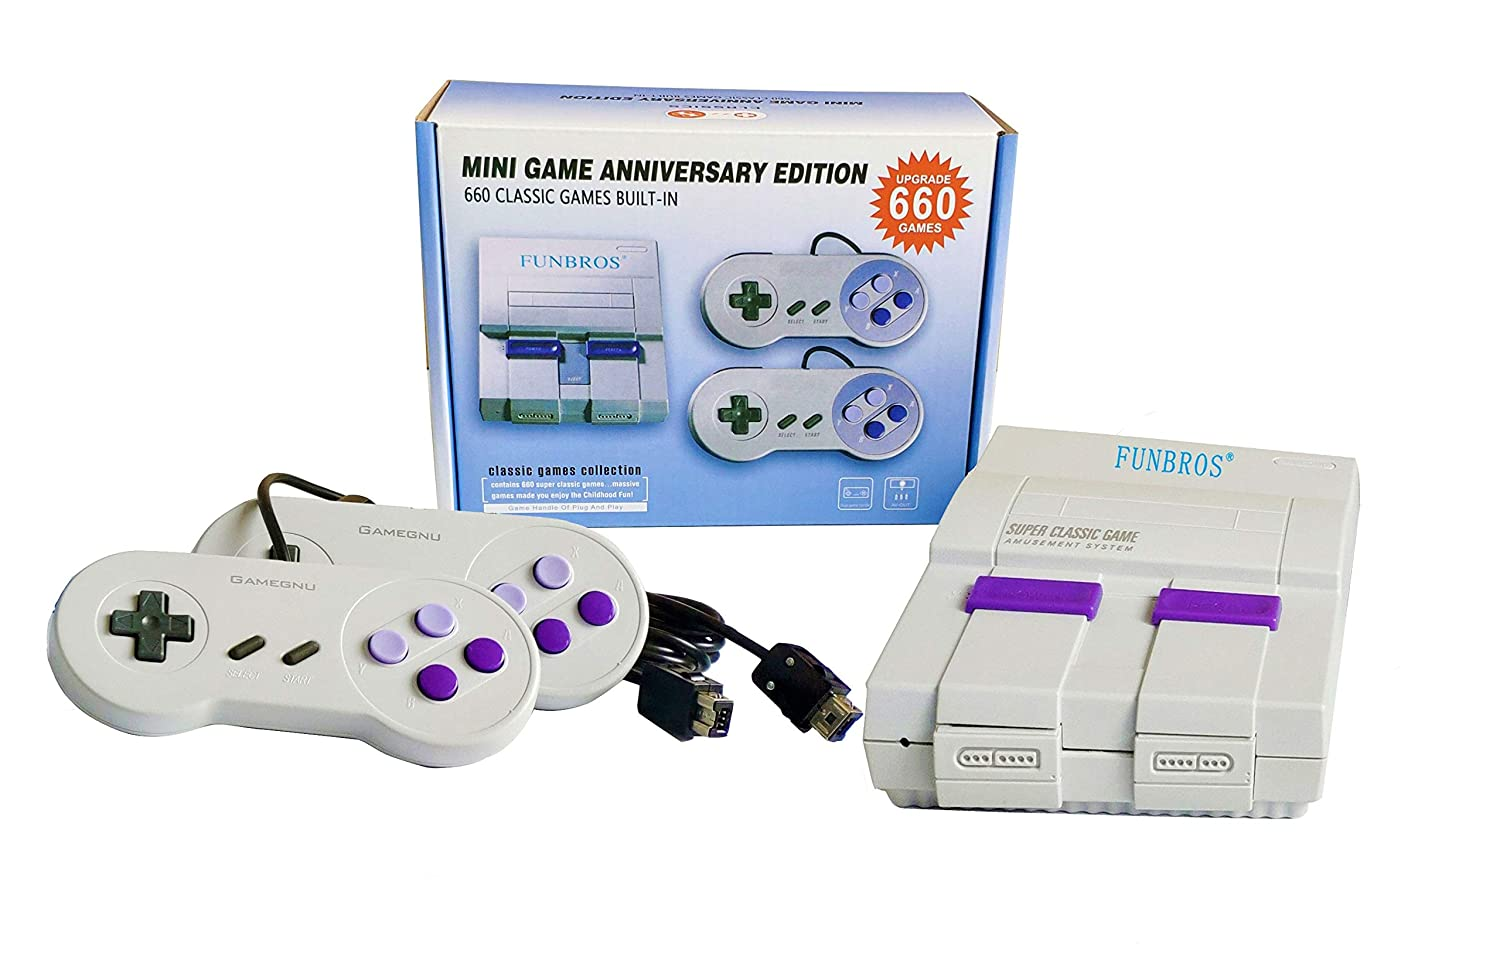 Mini Retro Game Consoles Built-in 660 Games Video Games, Bring You Happy Childhood Memories(AV Out ): Video Games